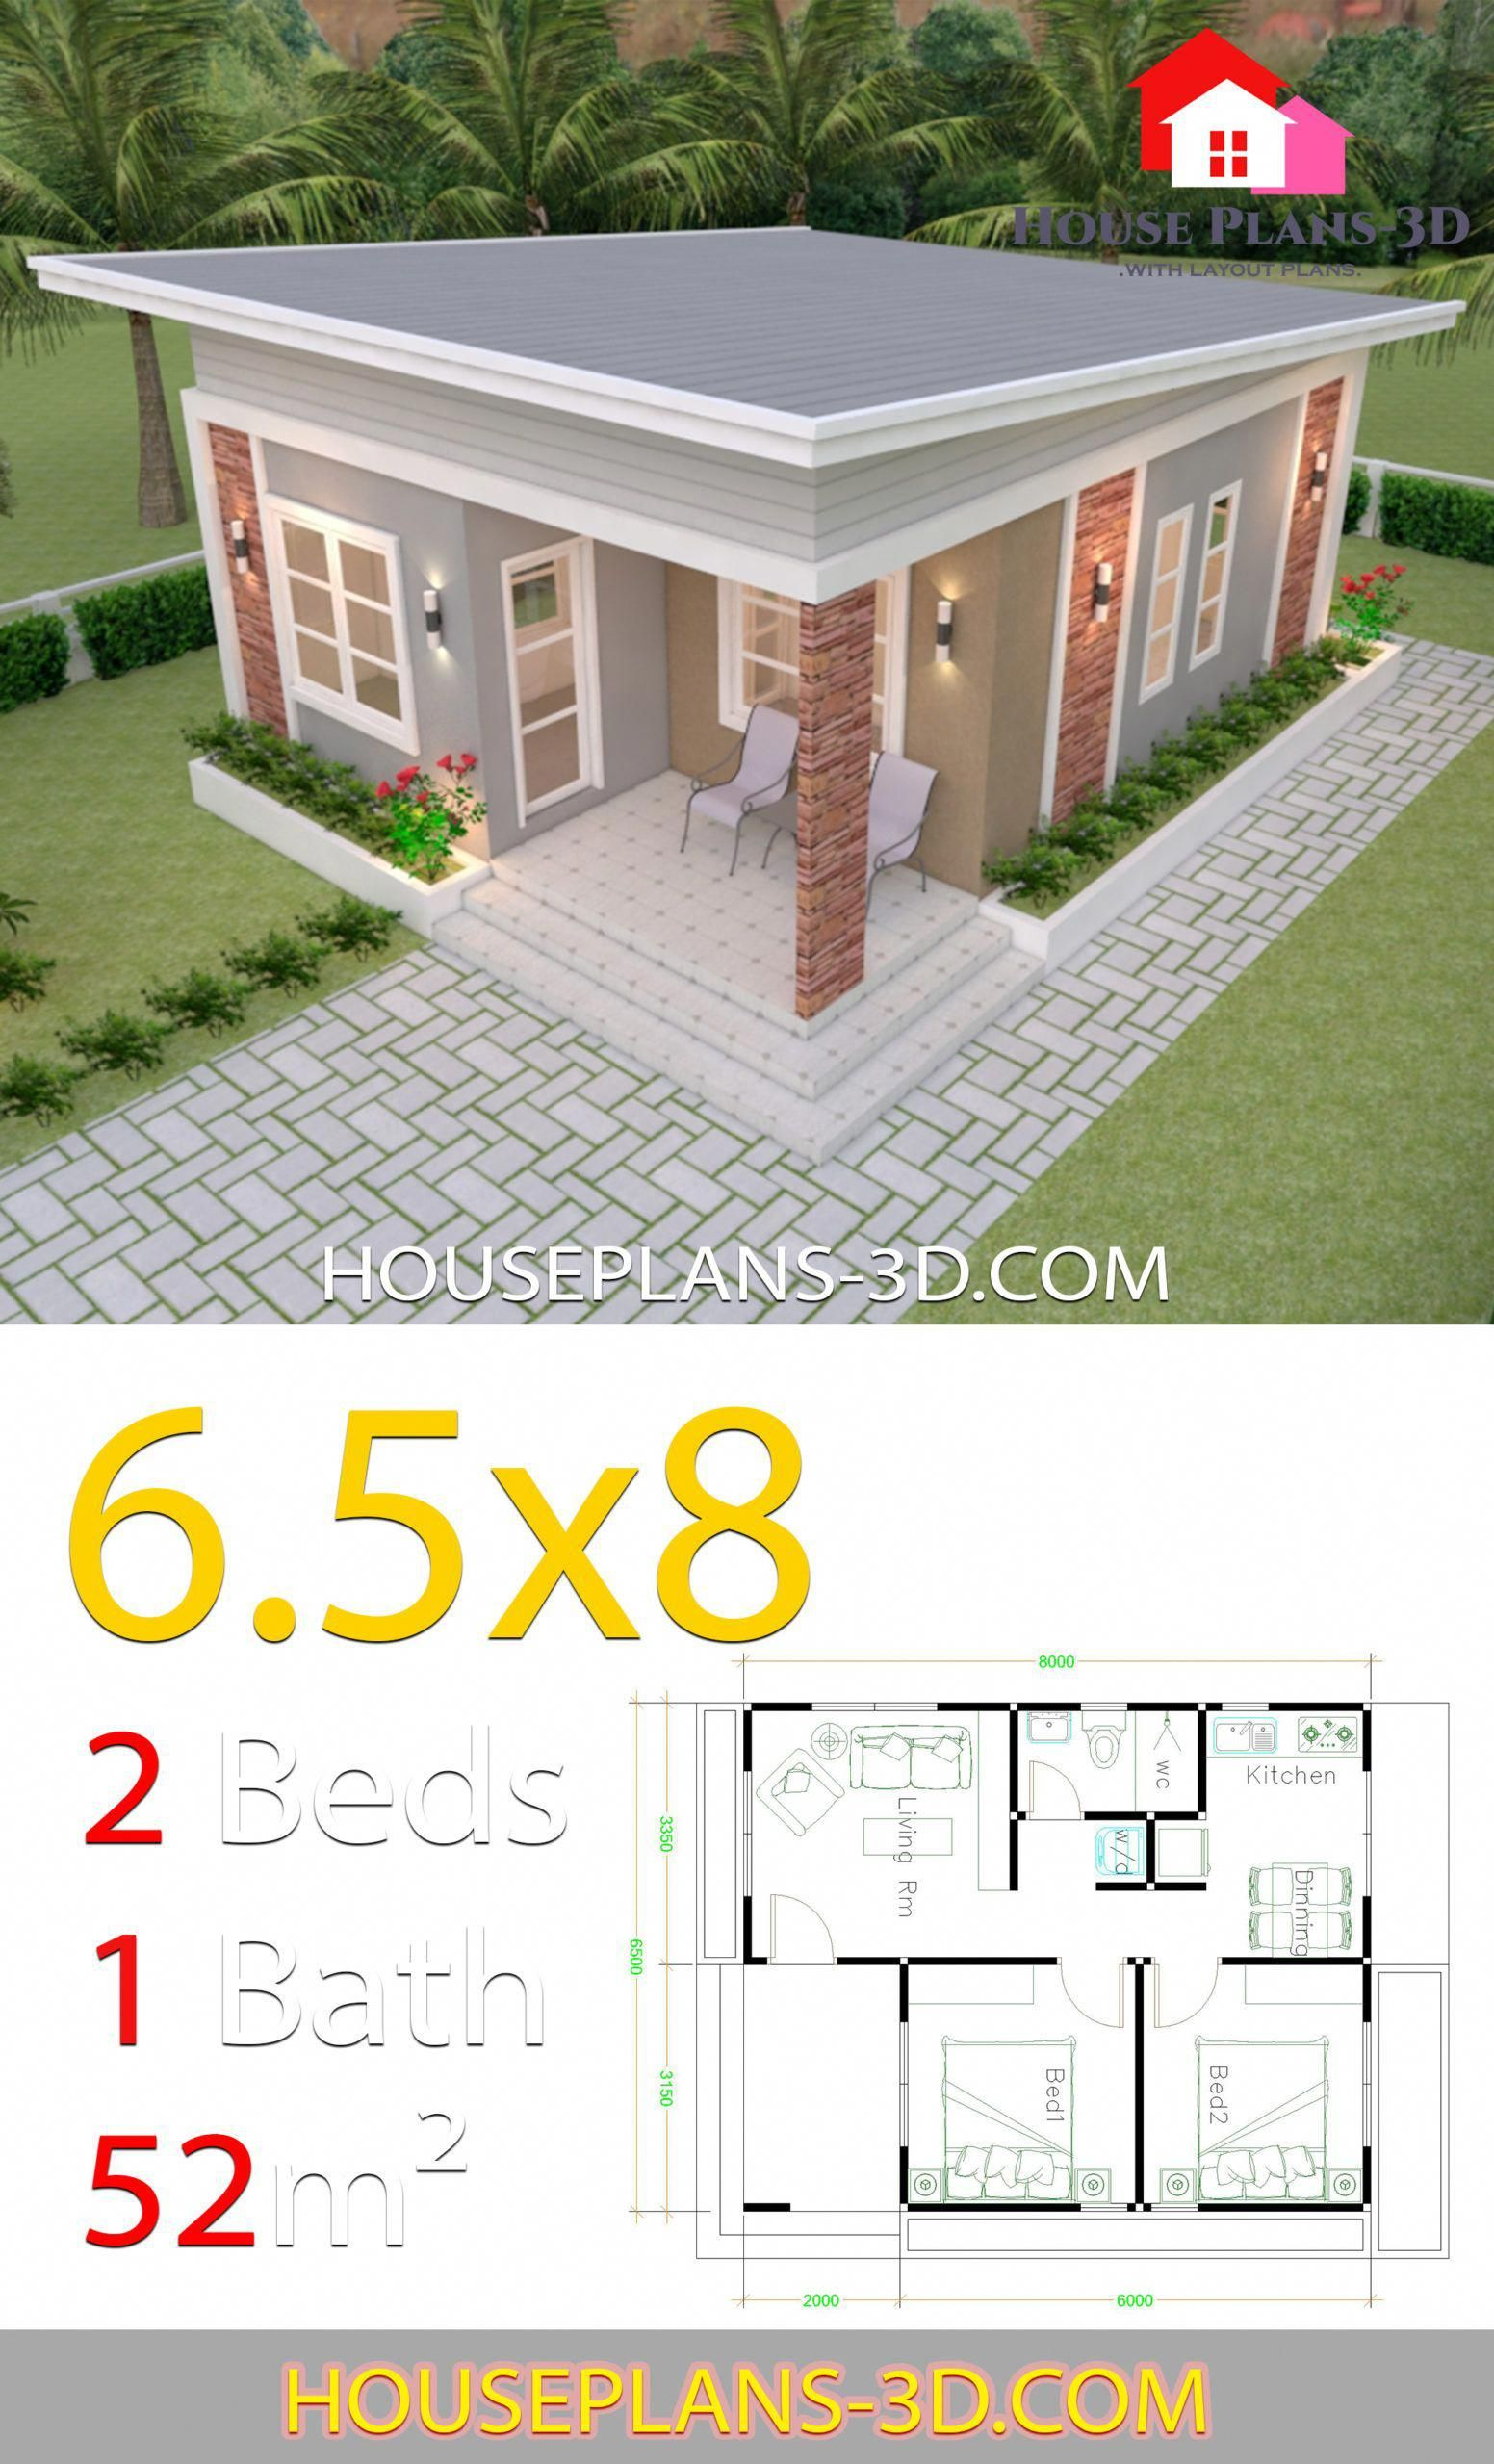 Spectacular Roof Photography See Our Content Article For Additional Suggestions Roofphot In 2020 Beautiful House Plans House Front Design Cottage Style House Plans